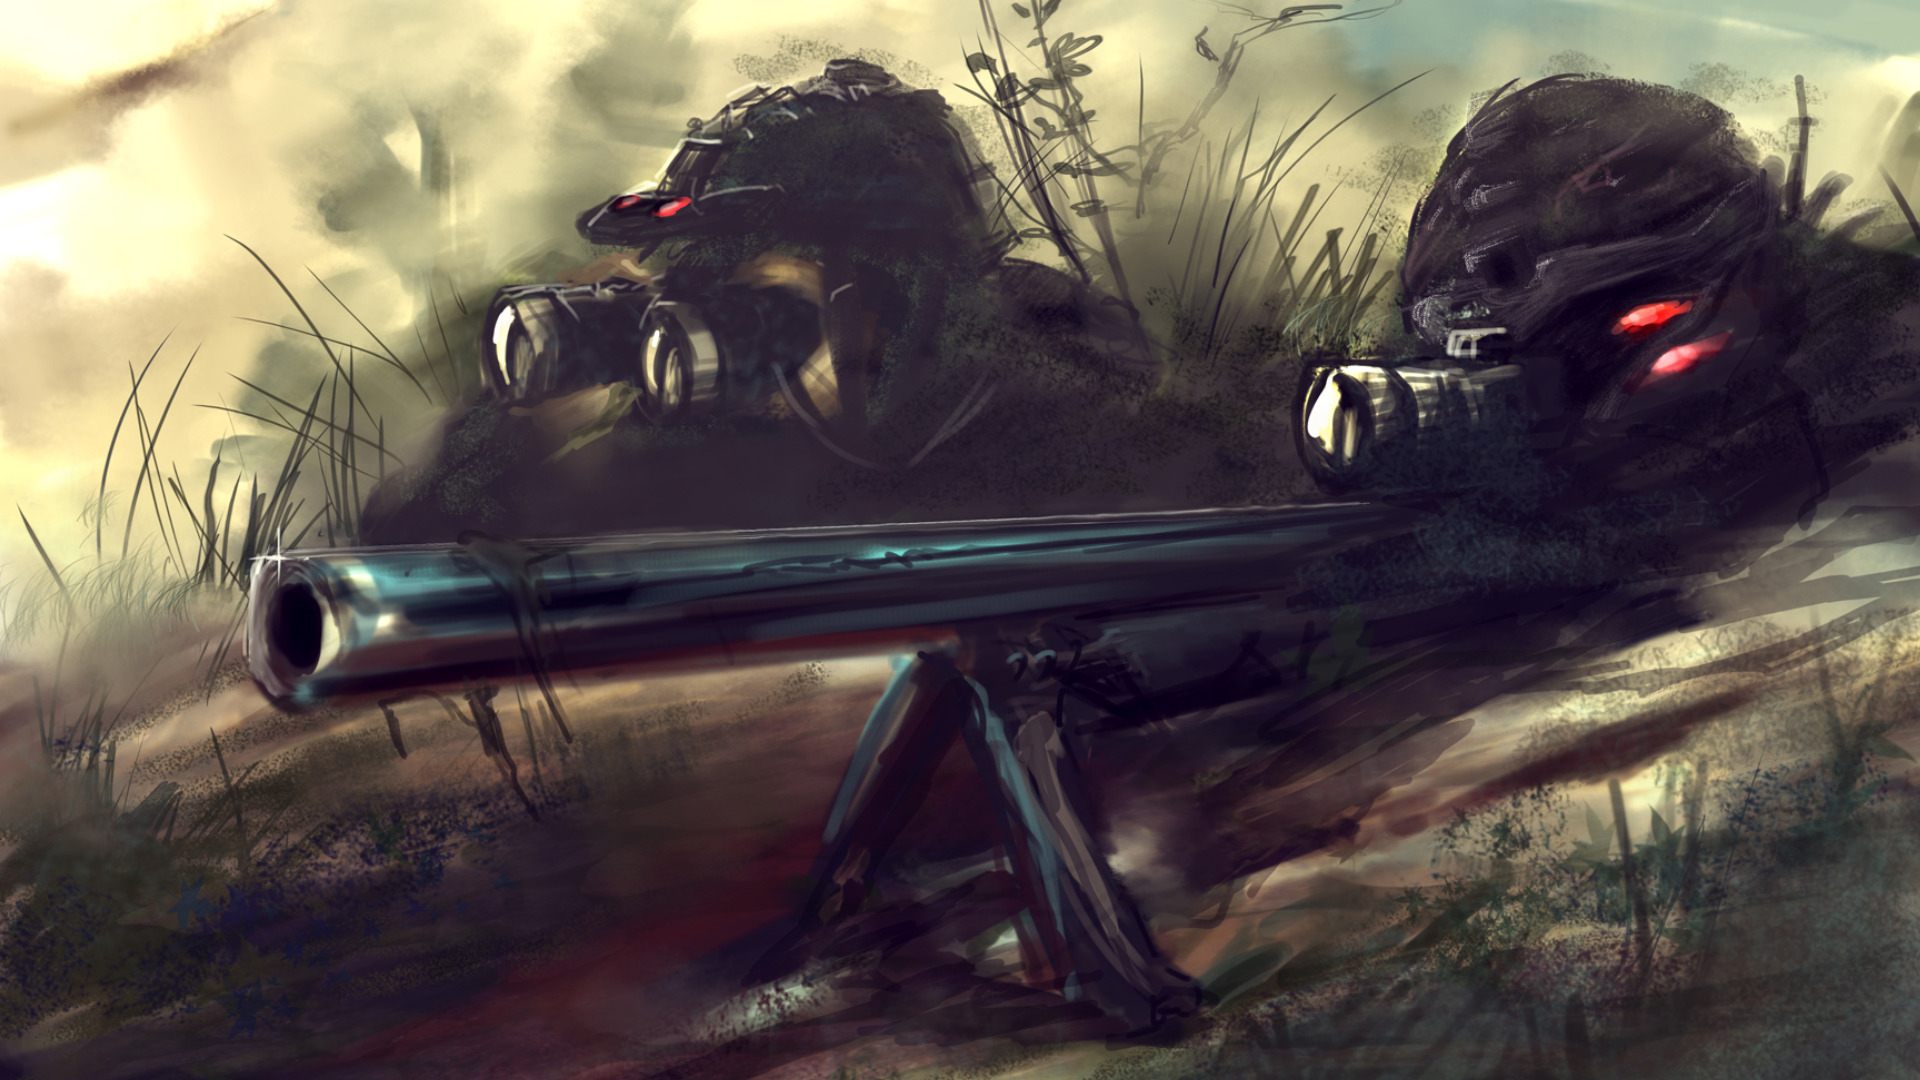 Wallpaper Abyss Explore the Collection Weapons Sniper Rifle Sniper 1920x1080